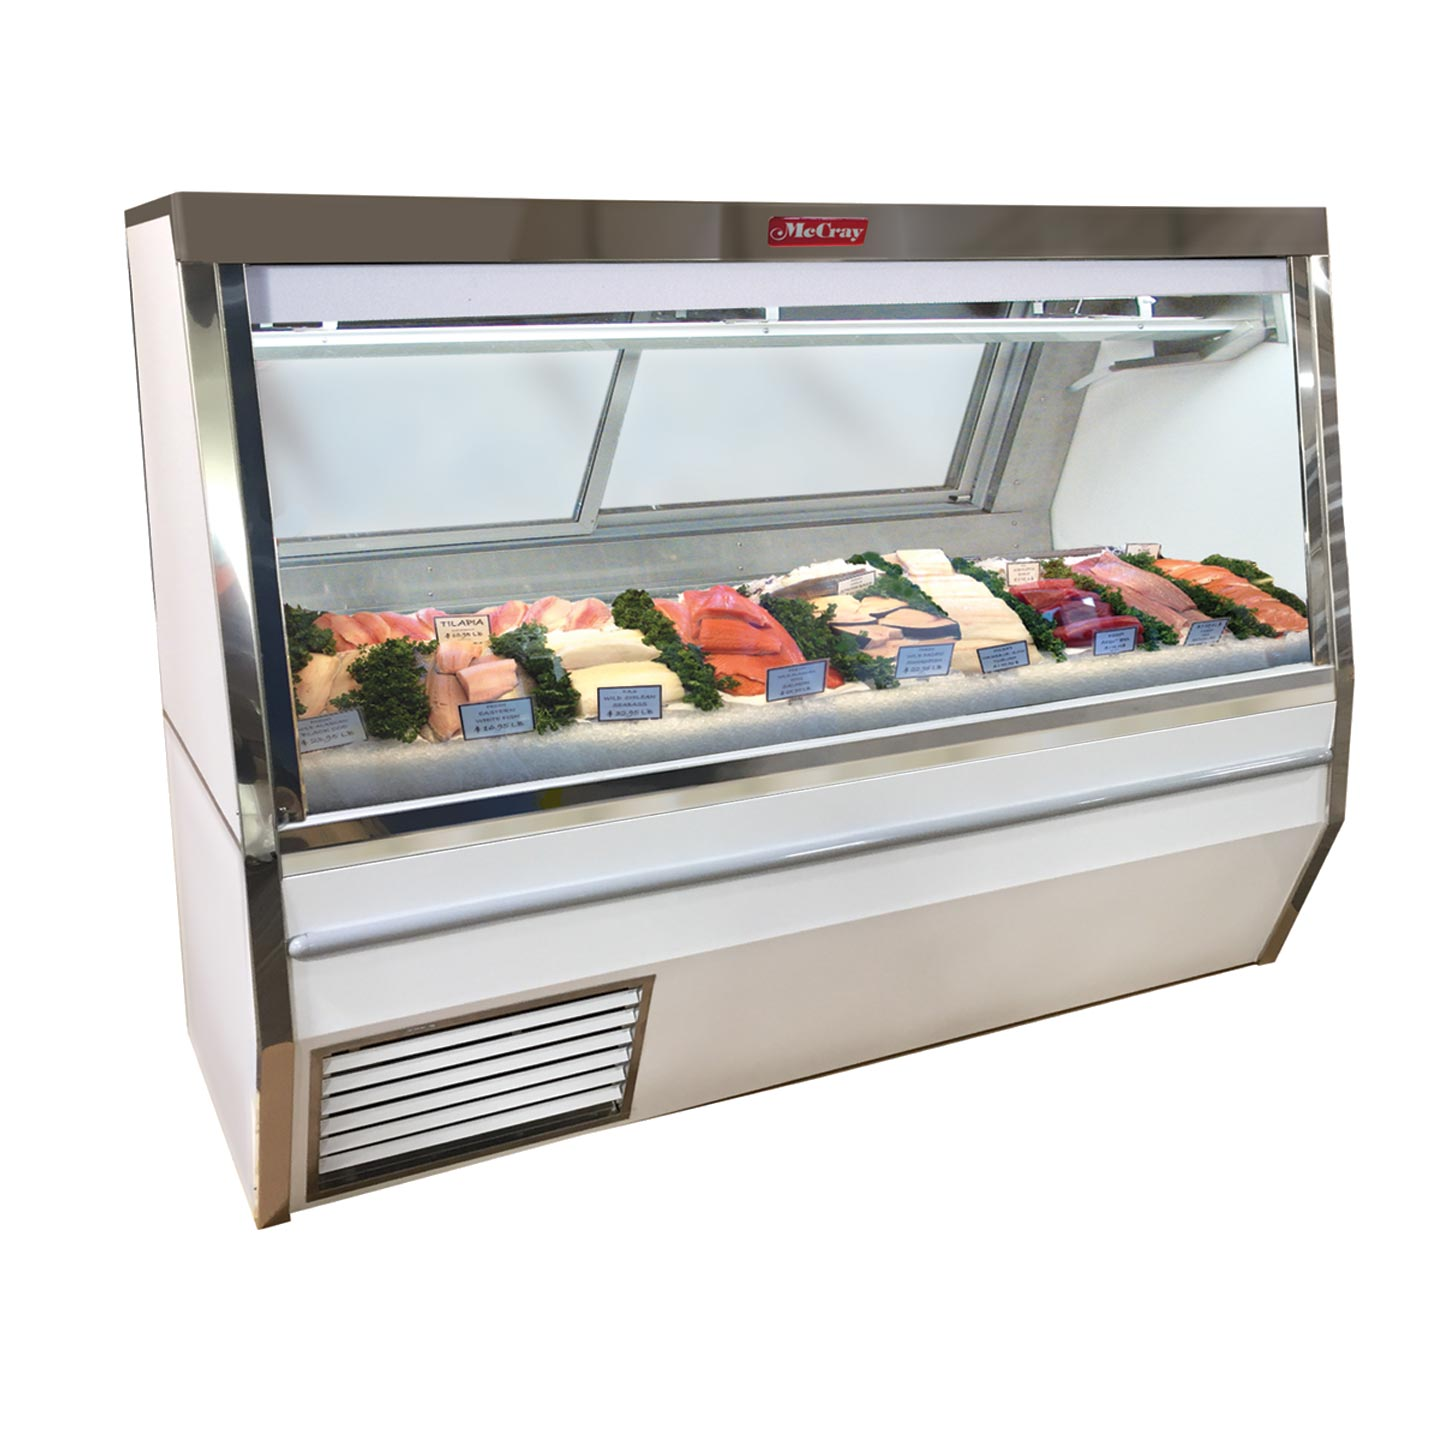 Howard-McCray SC-CFS34N-4-S-LED display case, deli seafood / poultry